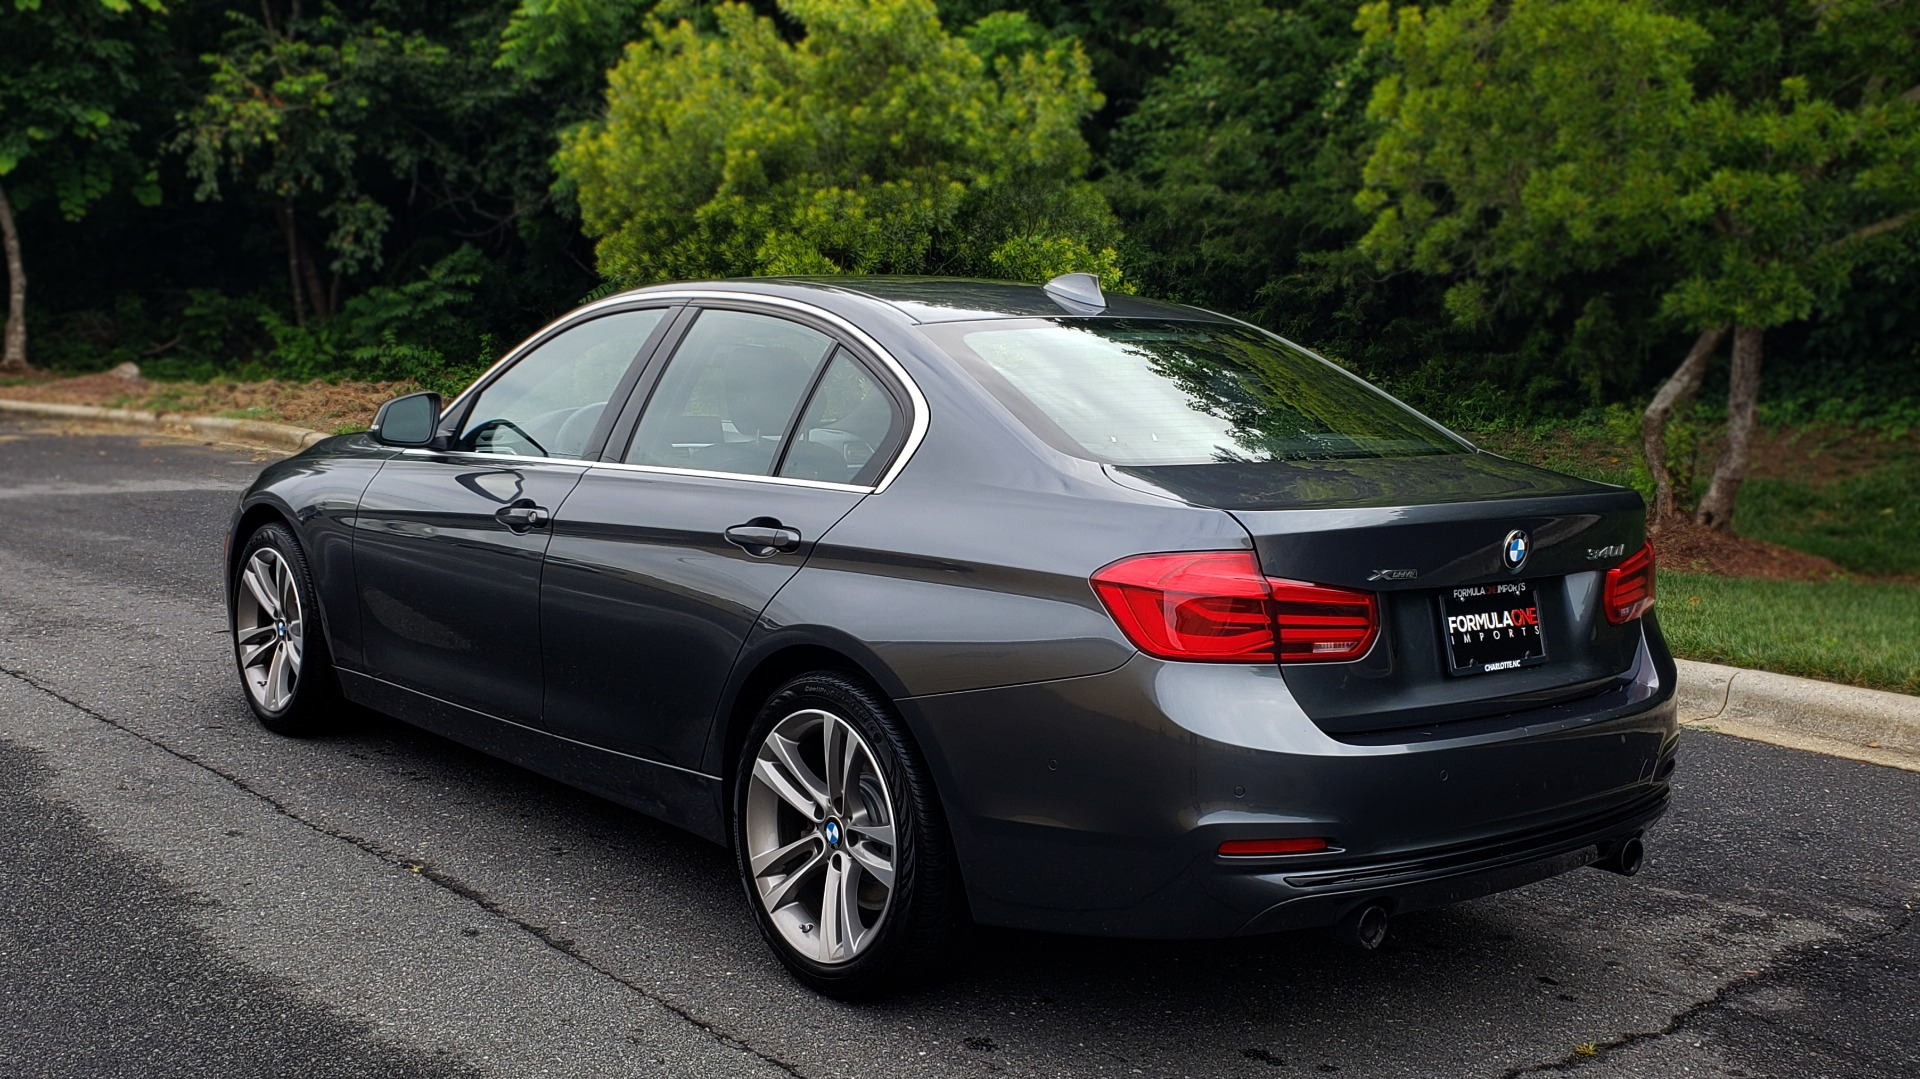 Used 2017 BMW 3 SERIES 340I XDRIVE SPORT / DRVR ASST PLUS / NAV / CLD WTHR / PARK ASST for sale Sold at Formula Imports in Charlotte NC 28227 3